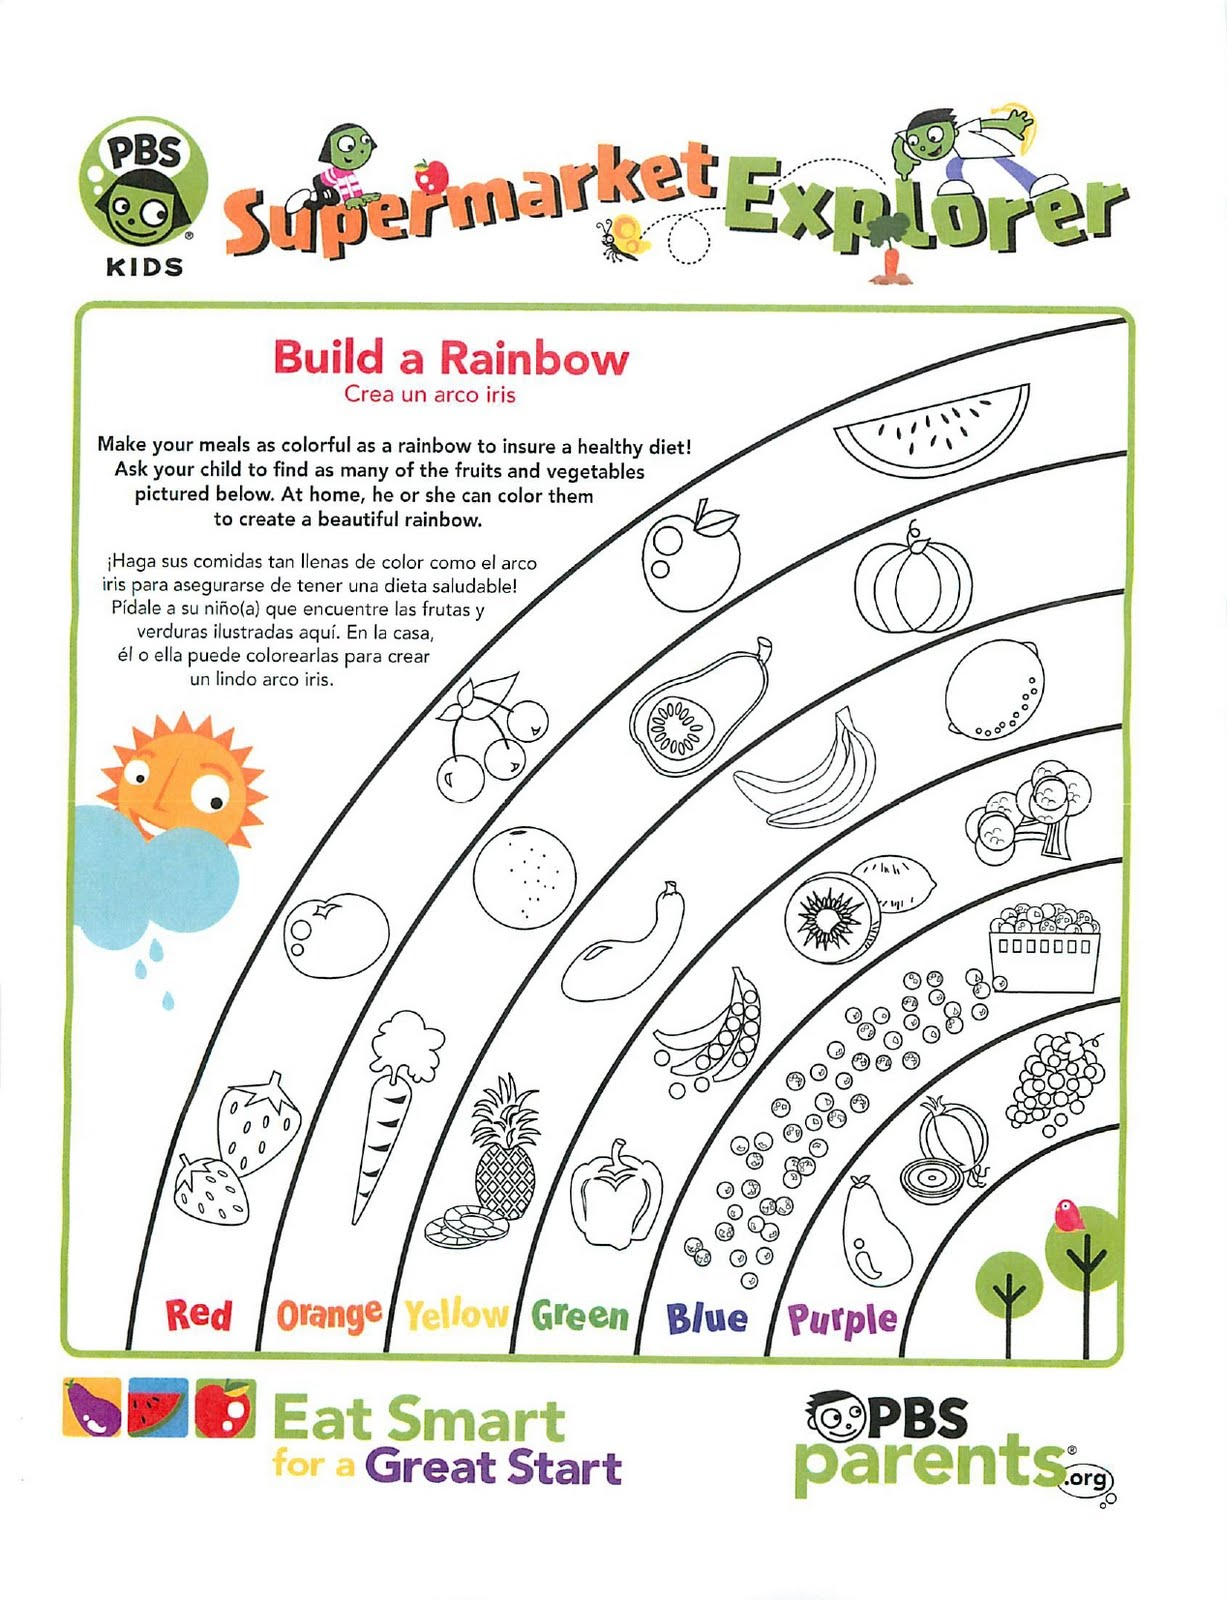 ... the PBS Kids website for more printable handouts and coloring pages